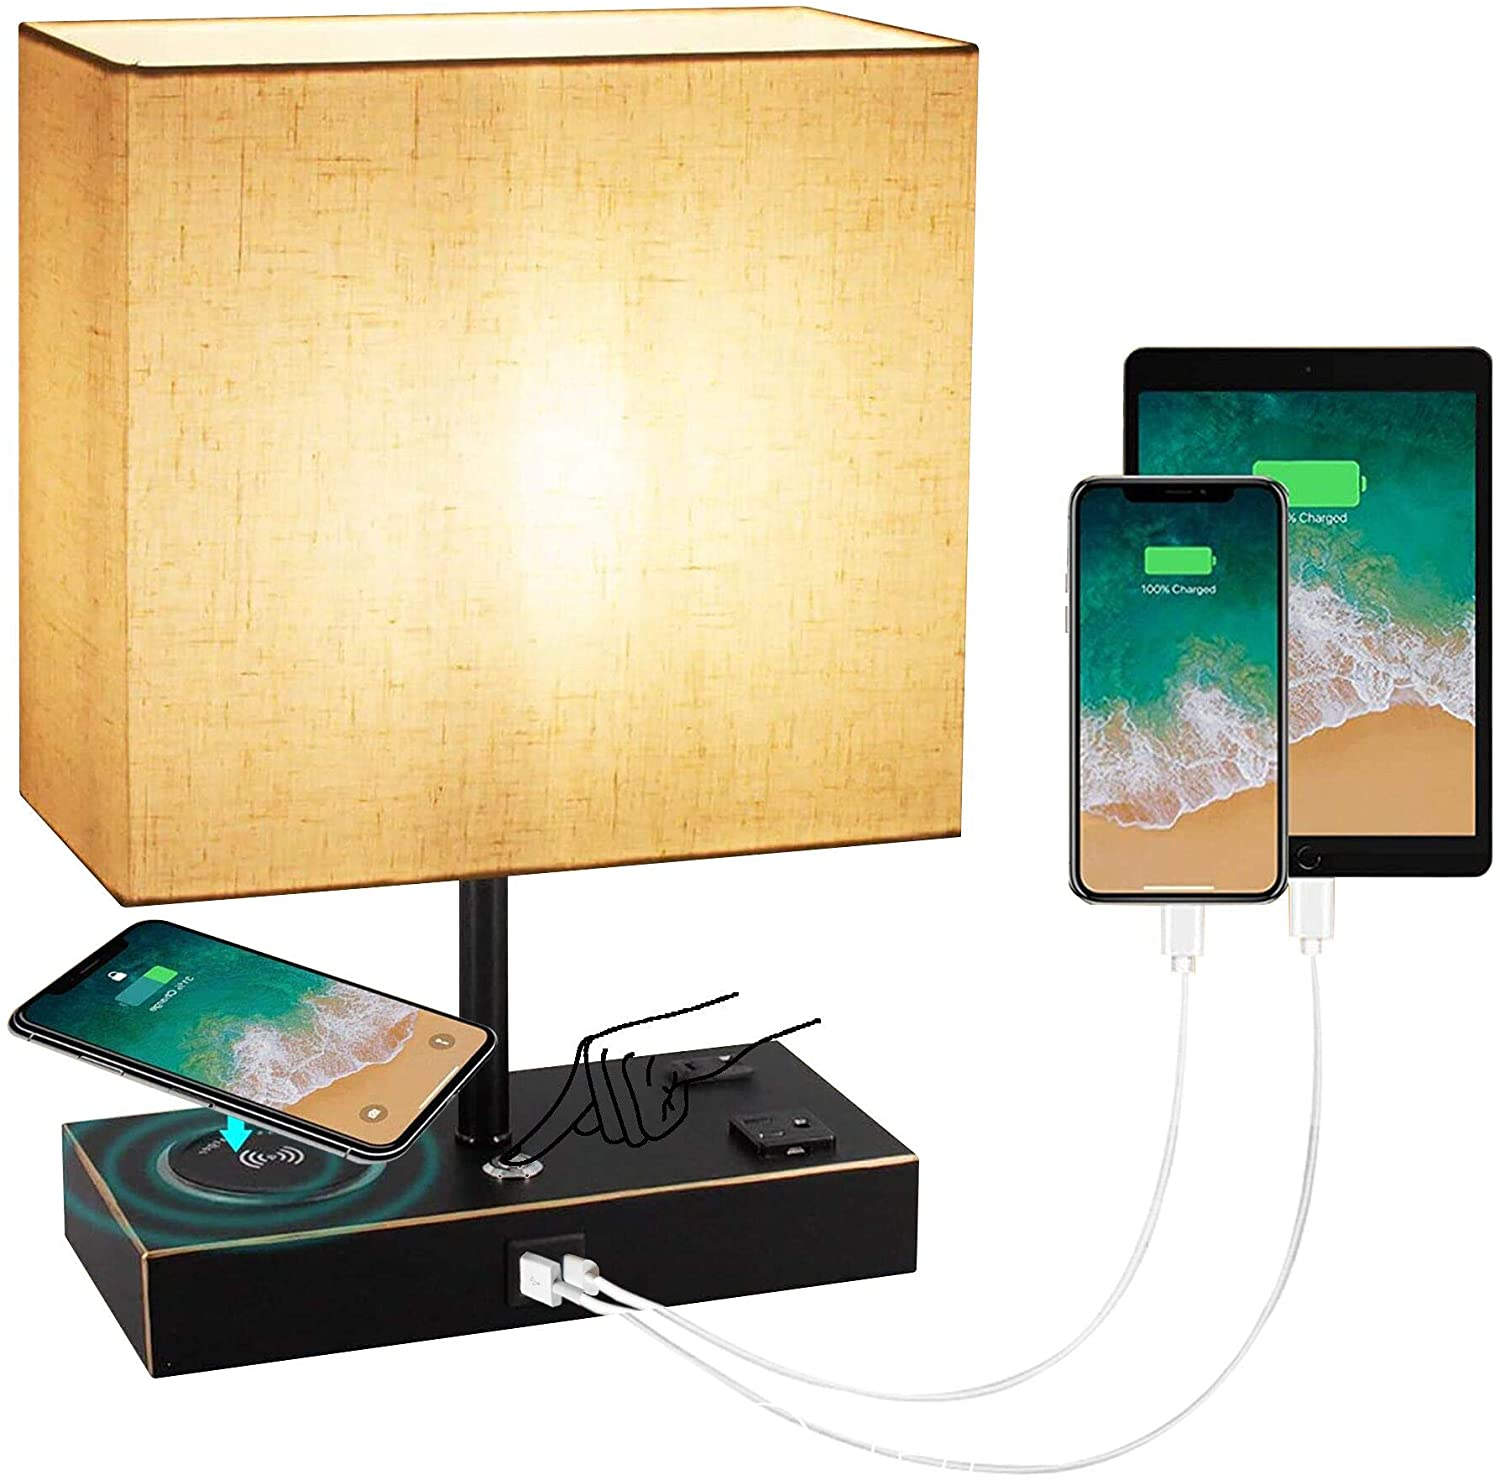 Touch Control Desk Lamp with Wireless Charger, 3 Way Dimmable Bedside Table Lamp with USB and Type C and 2 AC Outlets,Nightstand Desk Lamp for Bedroom Living Room Office, 9W Blub Include(Black).